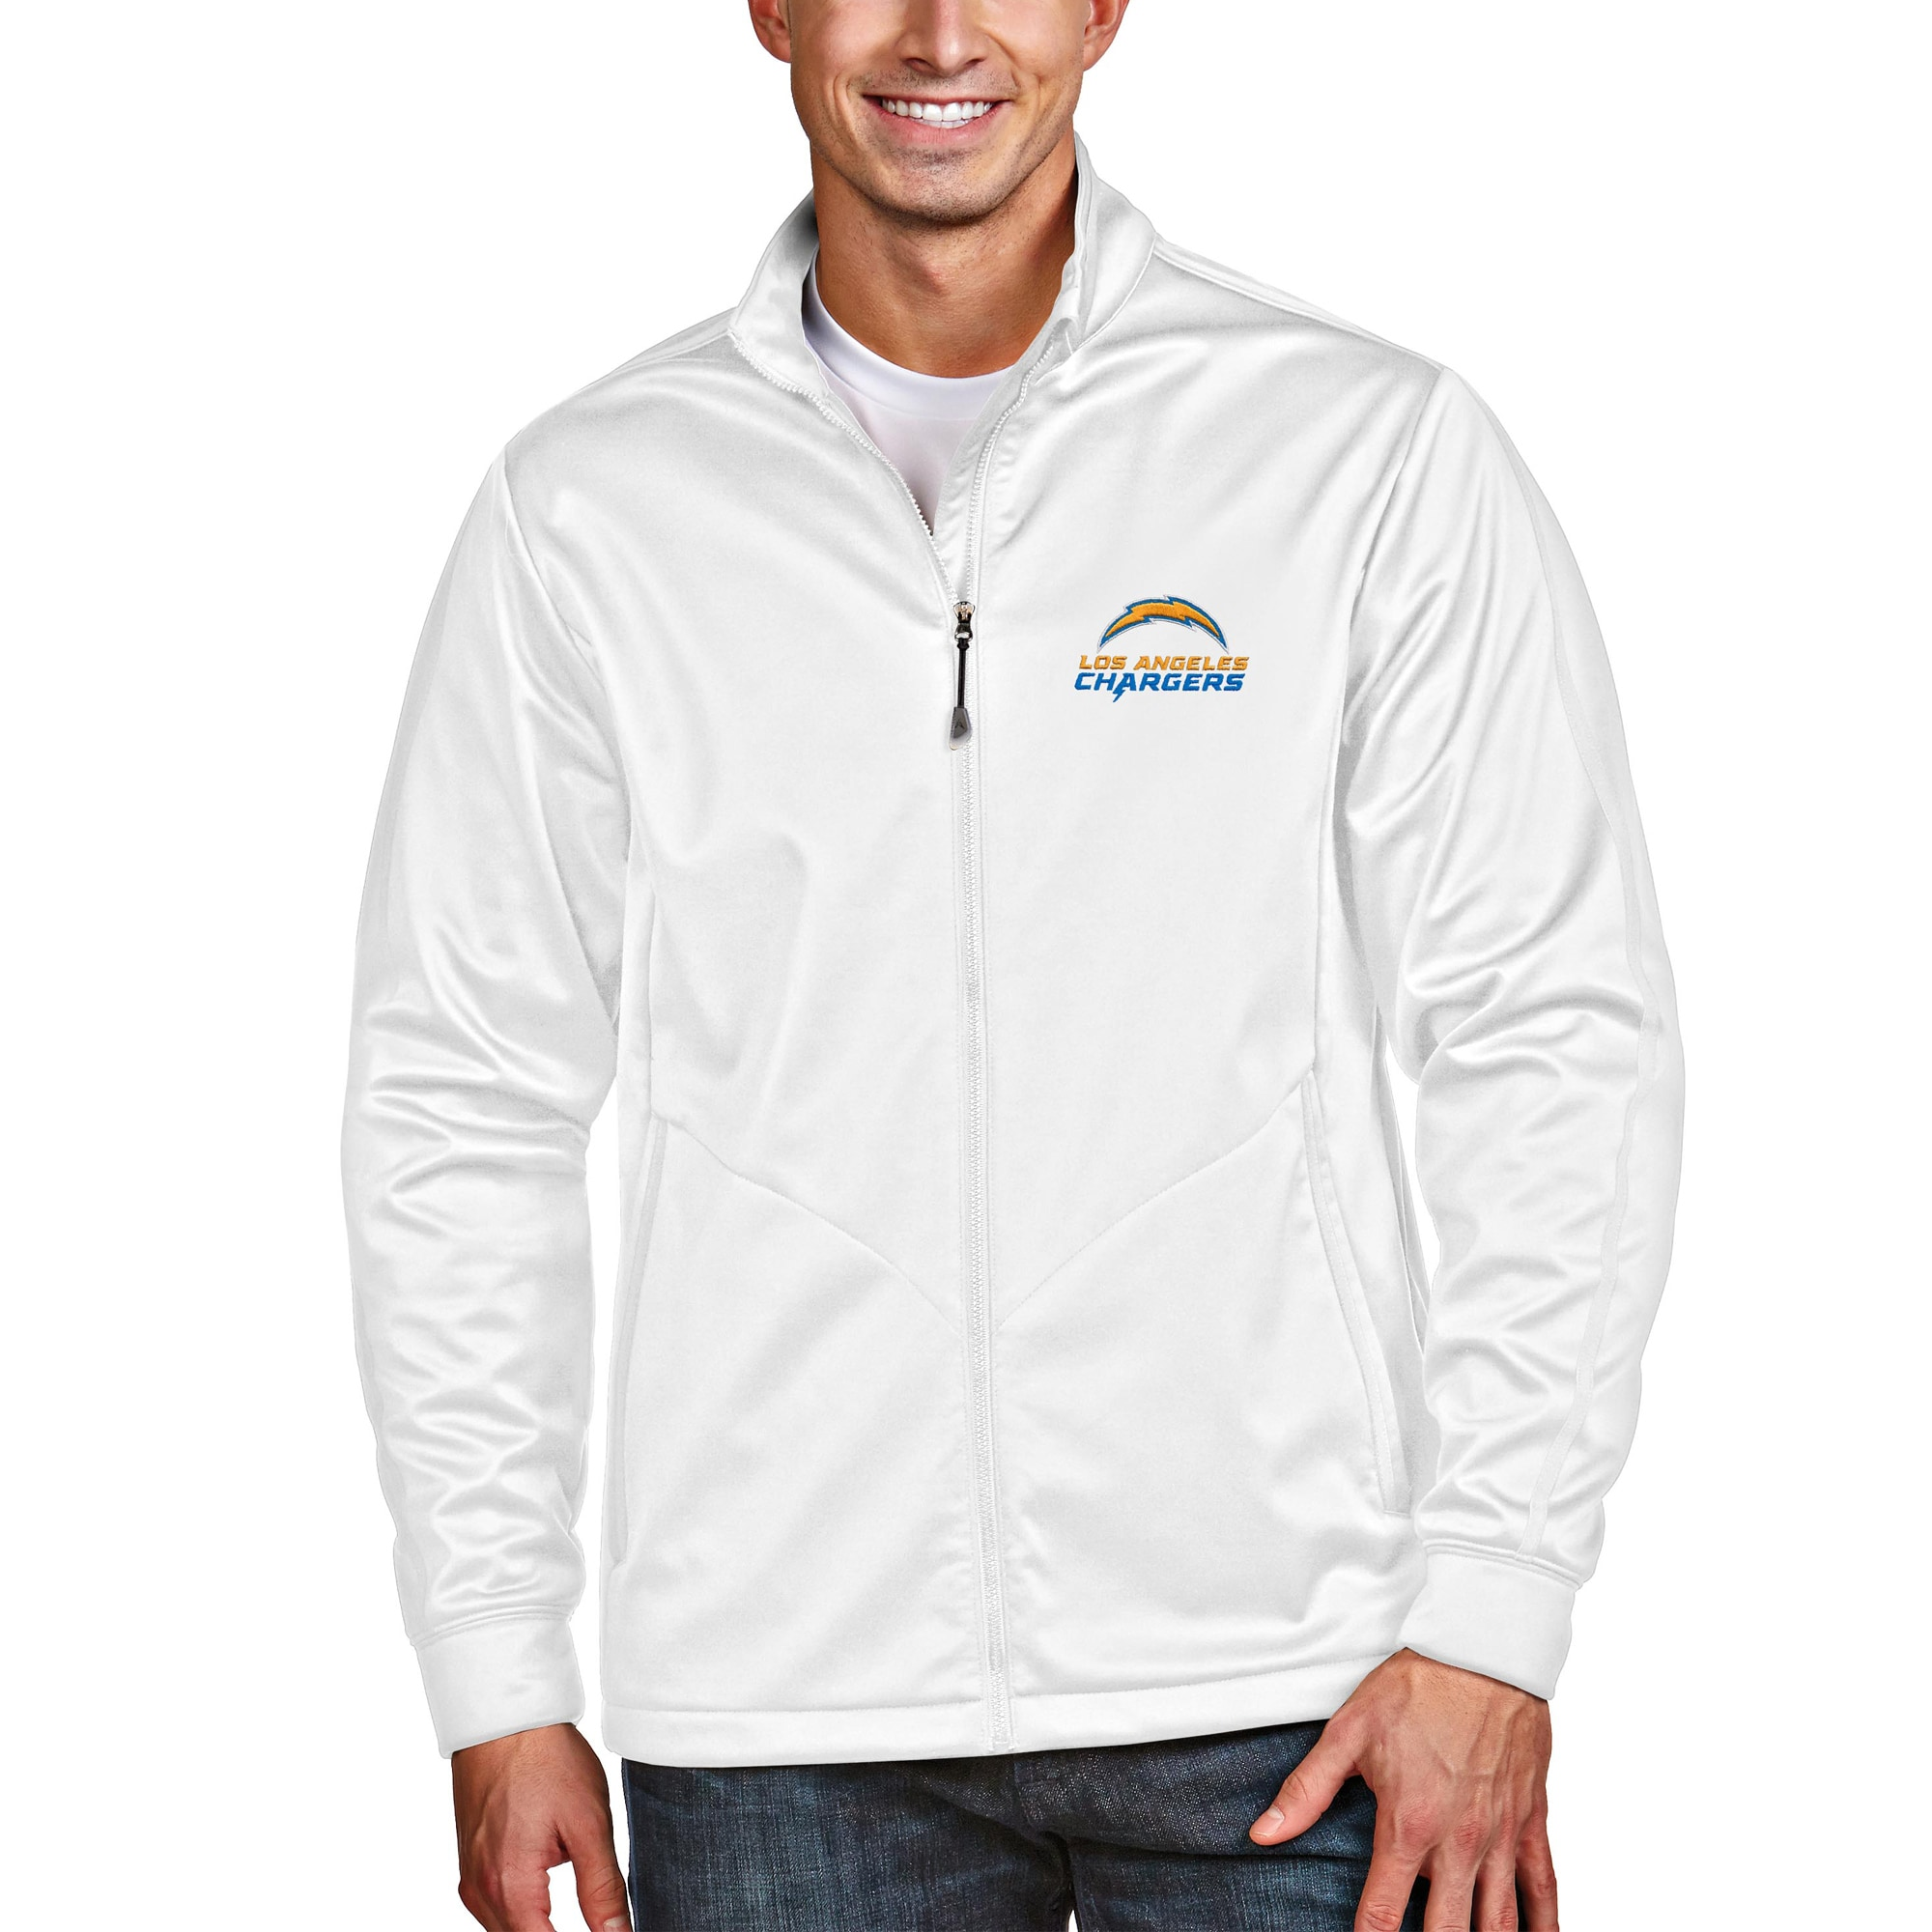 Los Angeles Chargers Antigua Full-Zip Golf Jacket - White